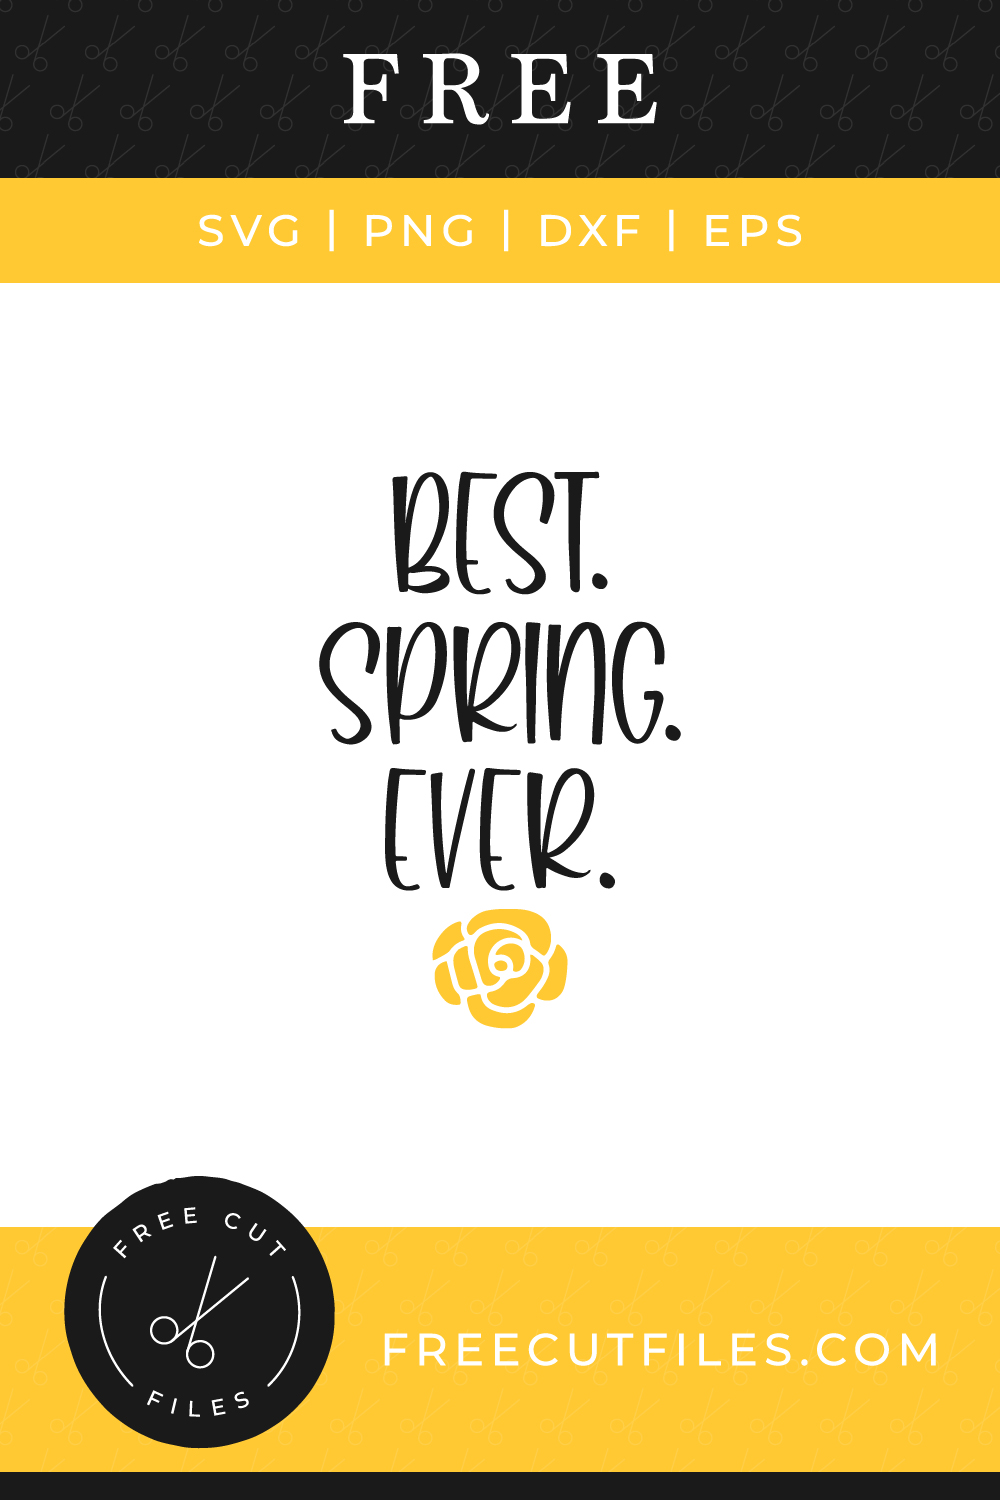 Best Spring ever Free SVG cut file quote